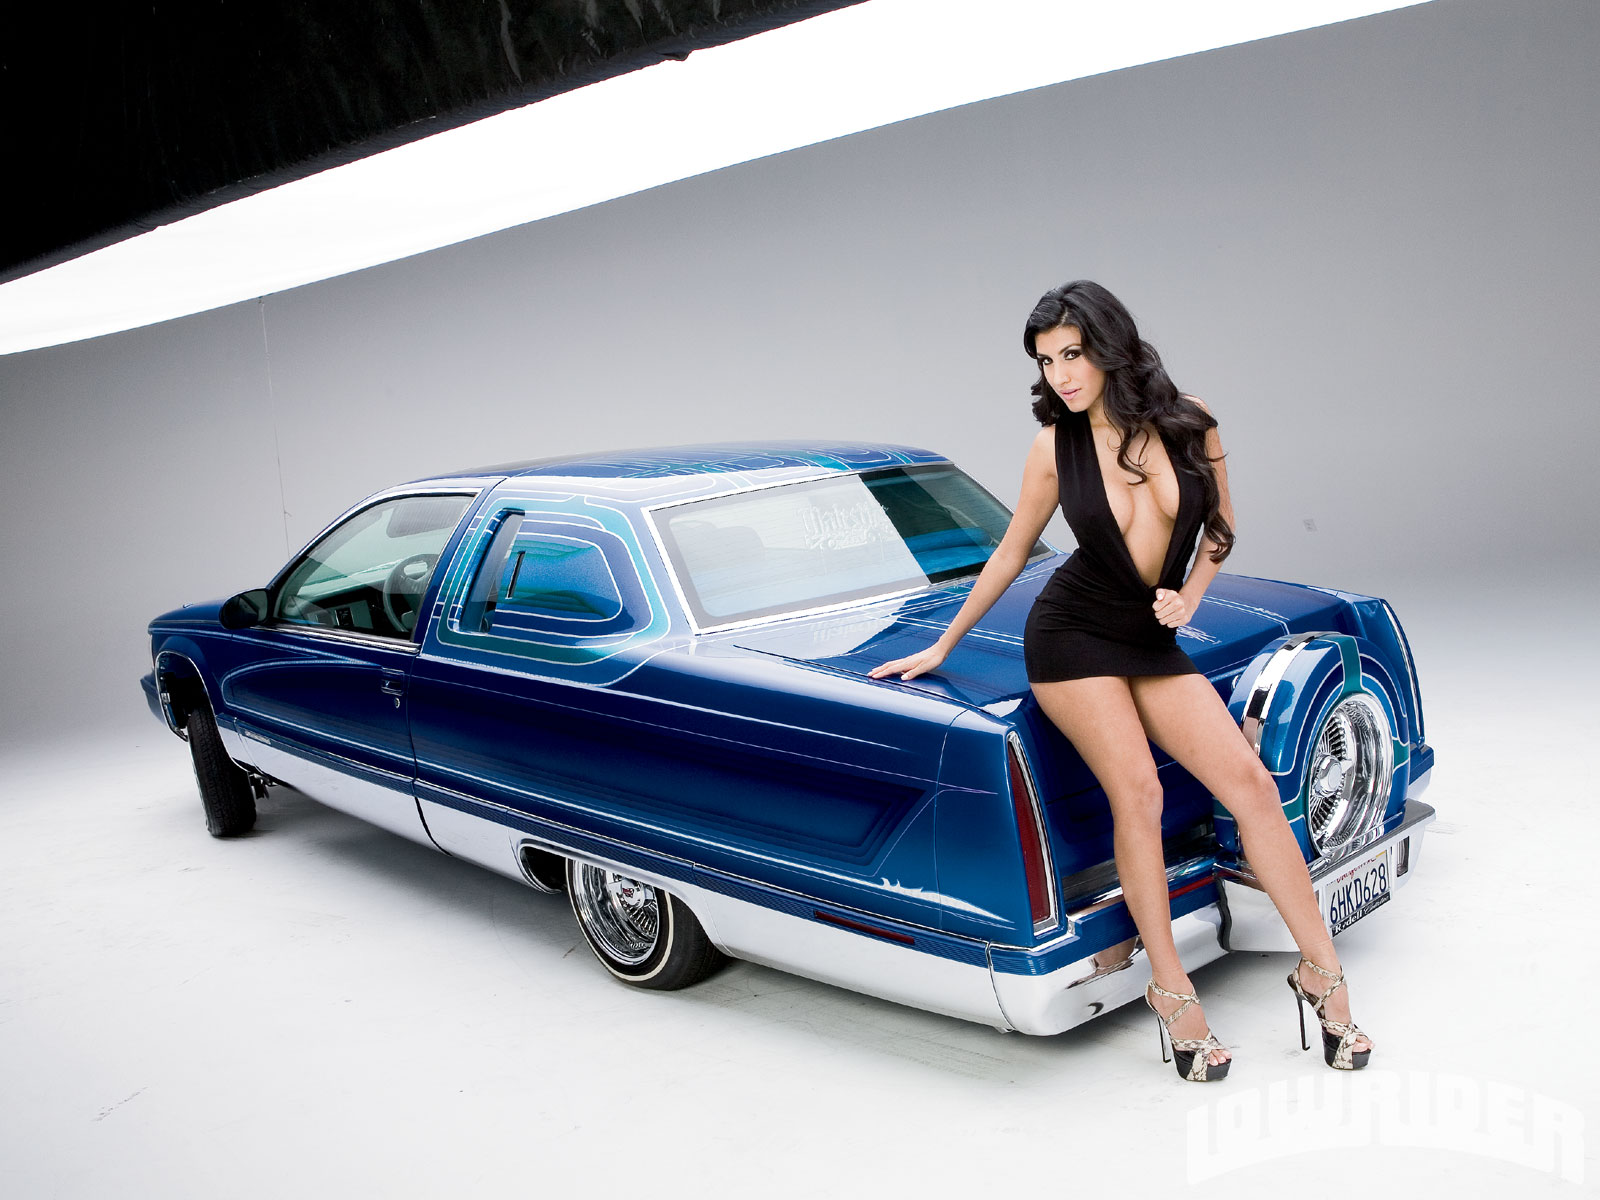 lowriders-and-sexy-girls